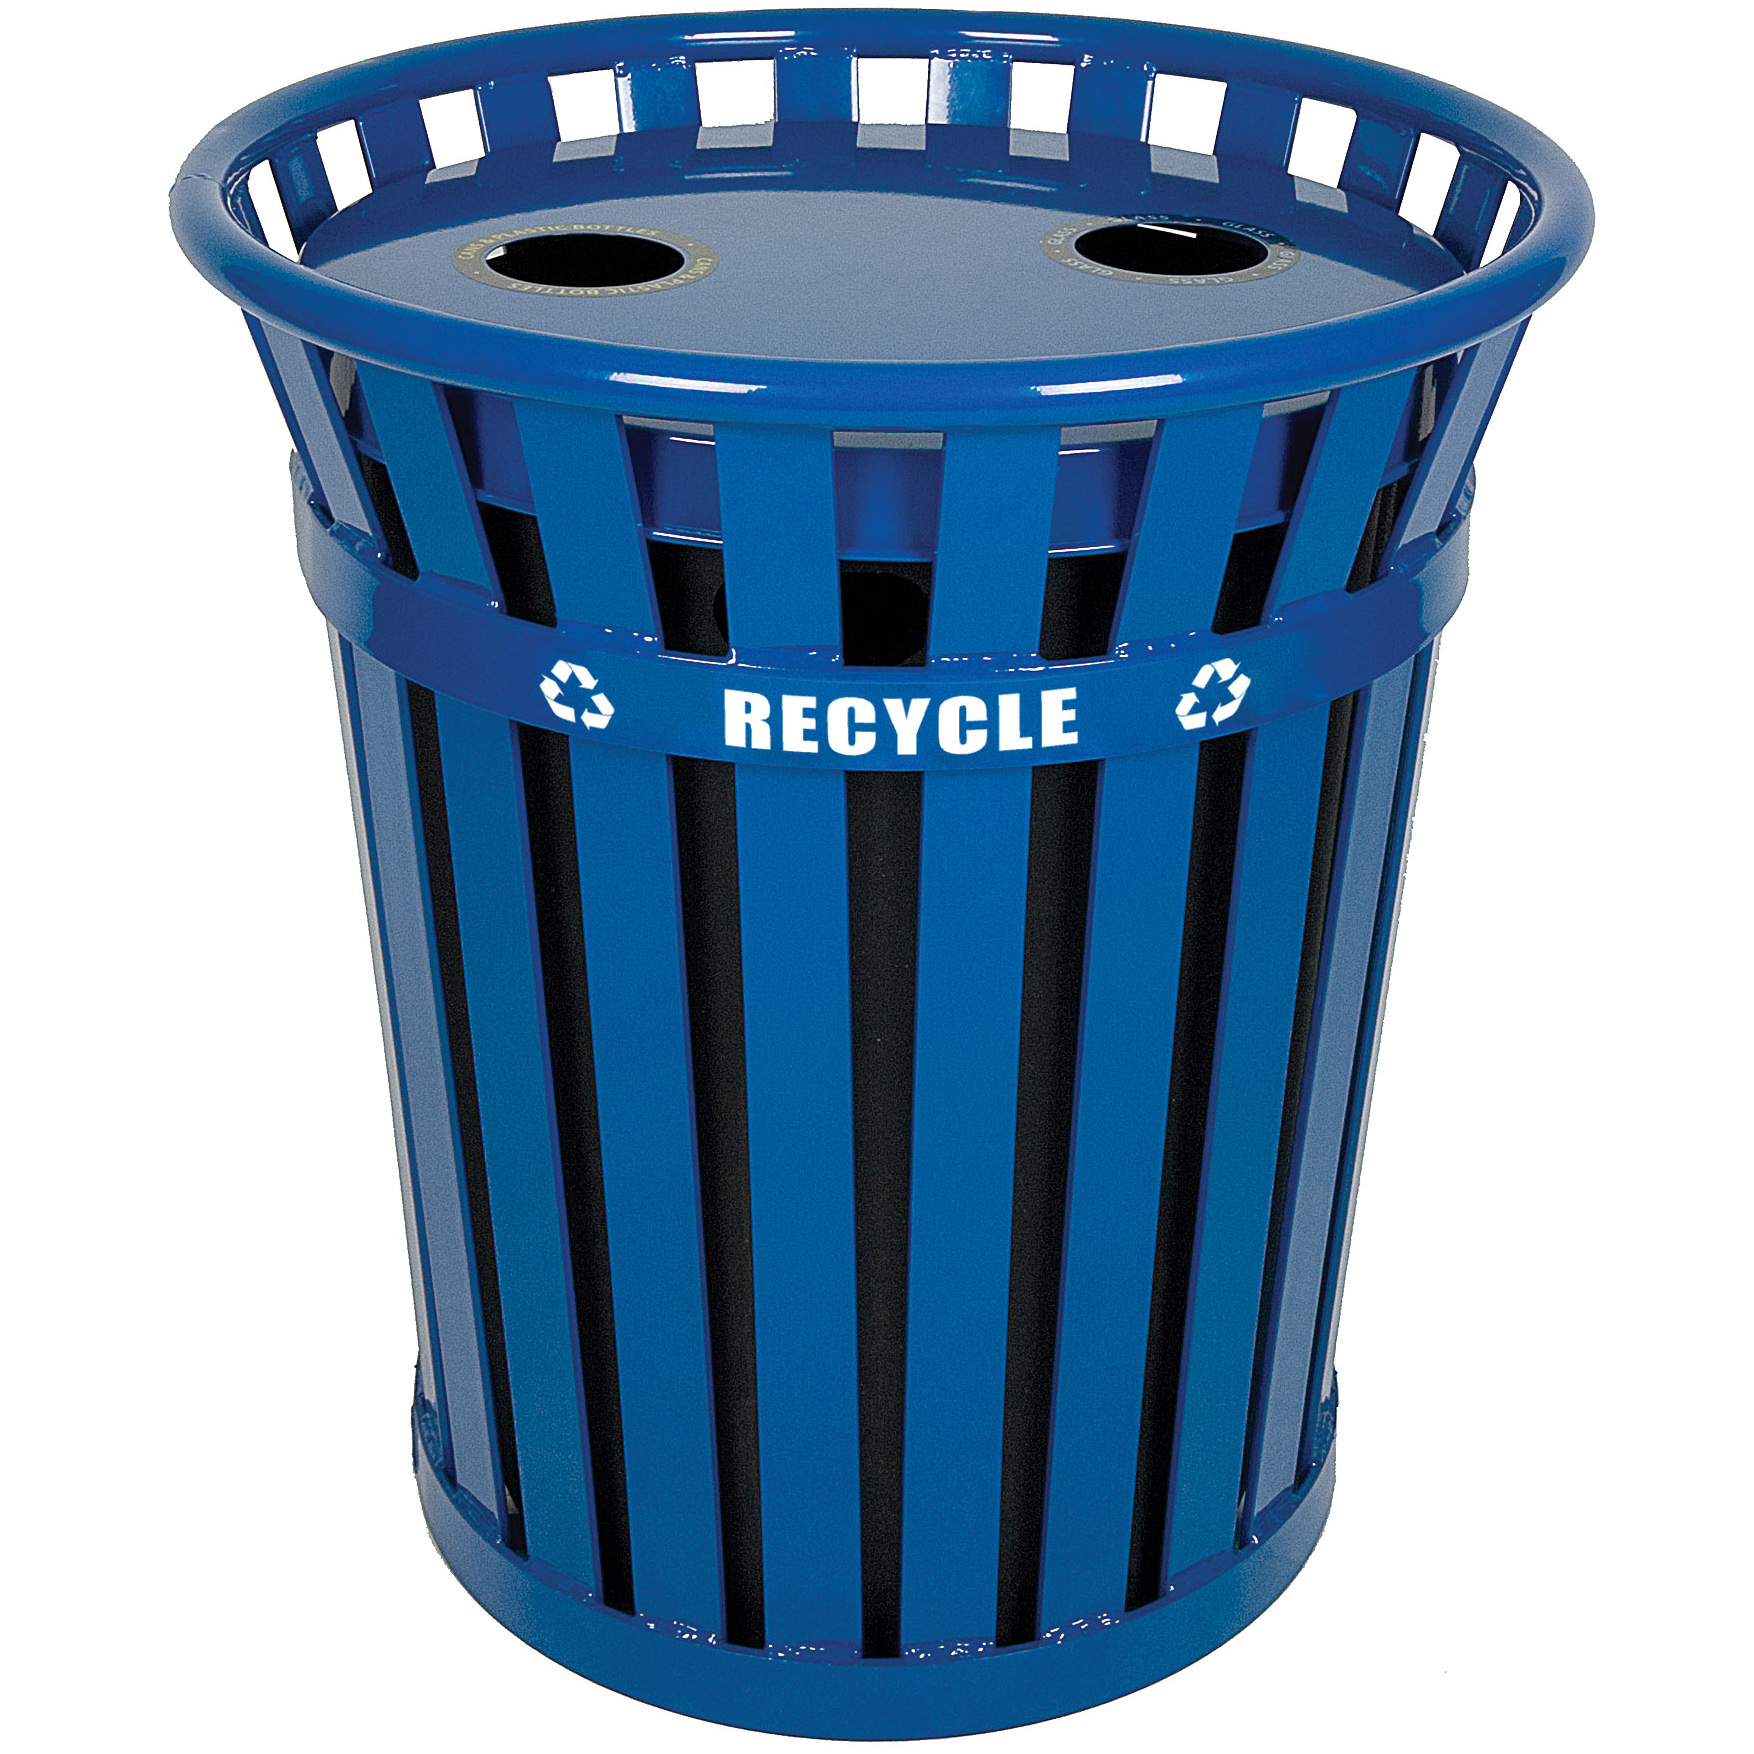 wydman 36 gallon recycling container - Outdoor Trash Cans